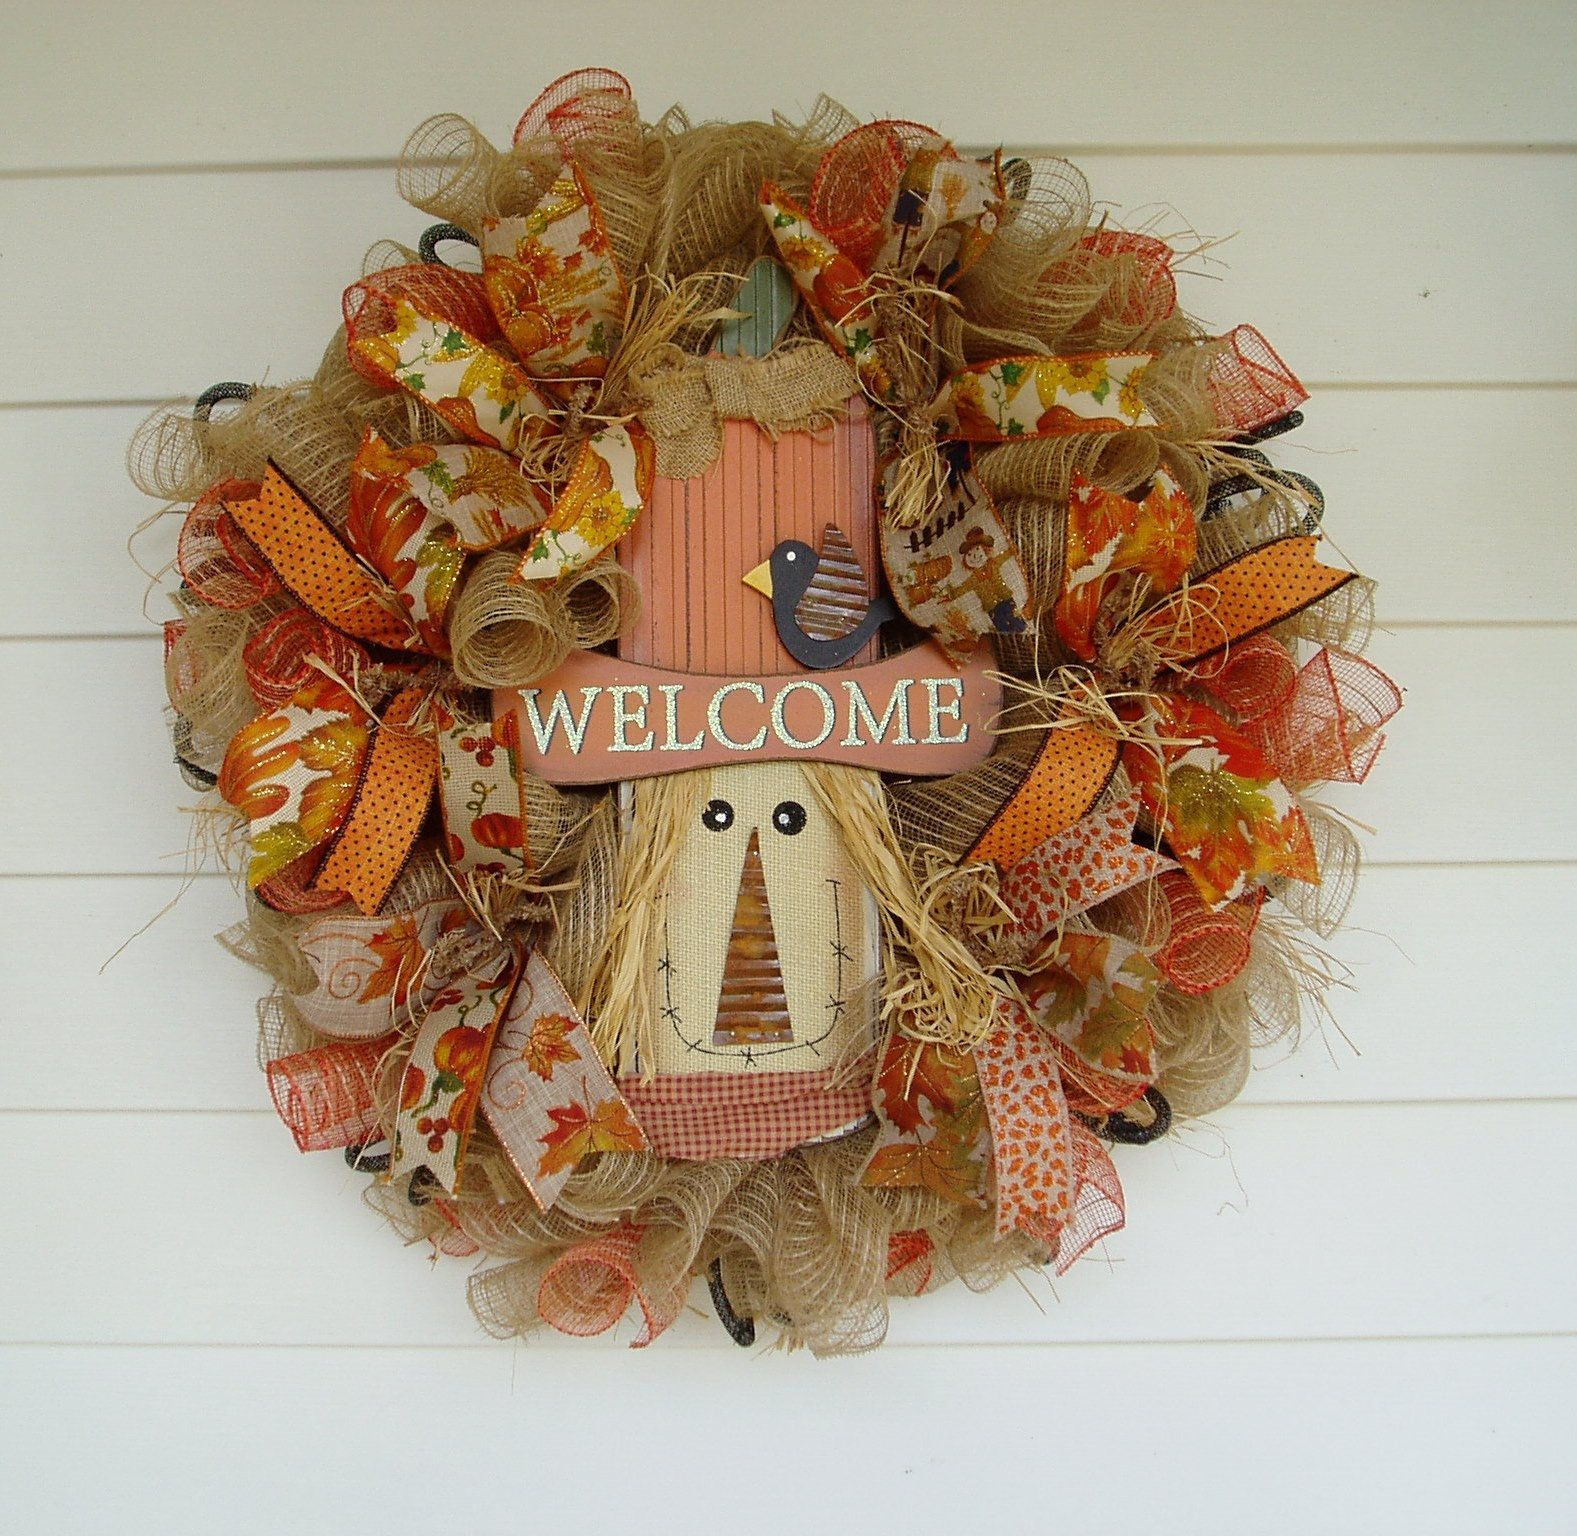 Scarecrow Wreath, Fall Wreath with Scarecrow, Fall Front Door Wreath, Fall Mesh Wreath, Whimsical Wreath, Fall Burlap Wreath, Fall Wreath #scarecrowwreath Scarecrow Wreath, Fall Wreath with Scarecrow, Fall Front Door Wreath, Fall Mesh Wreath, Whimsical Wreath, Fall Burlap Wreath, Fall Wreath #scarecrowwreath